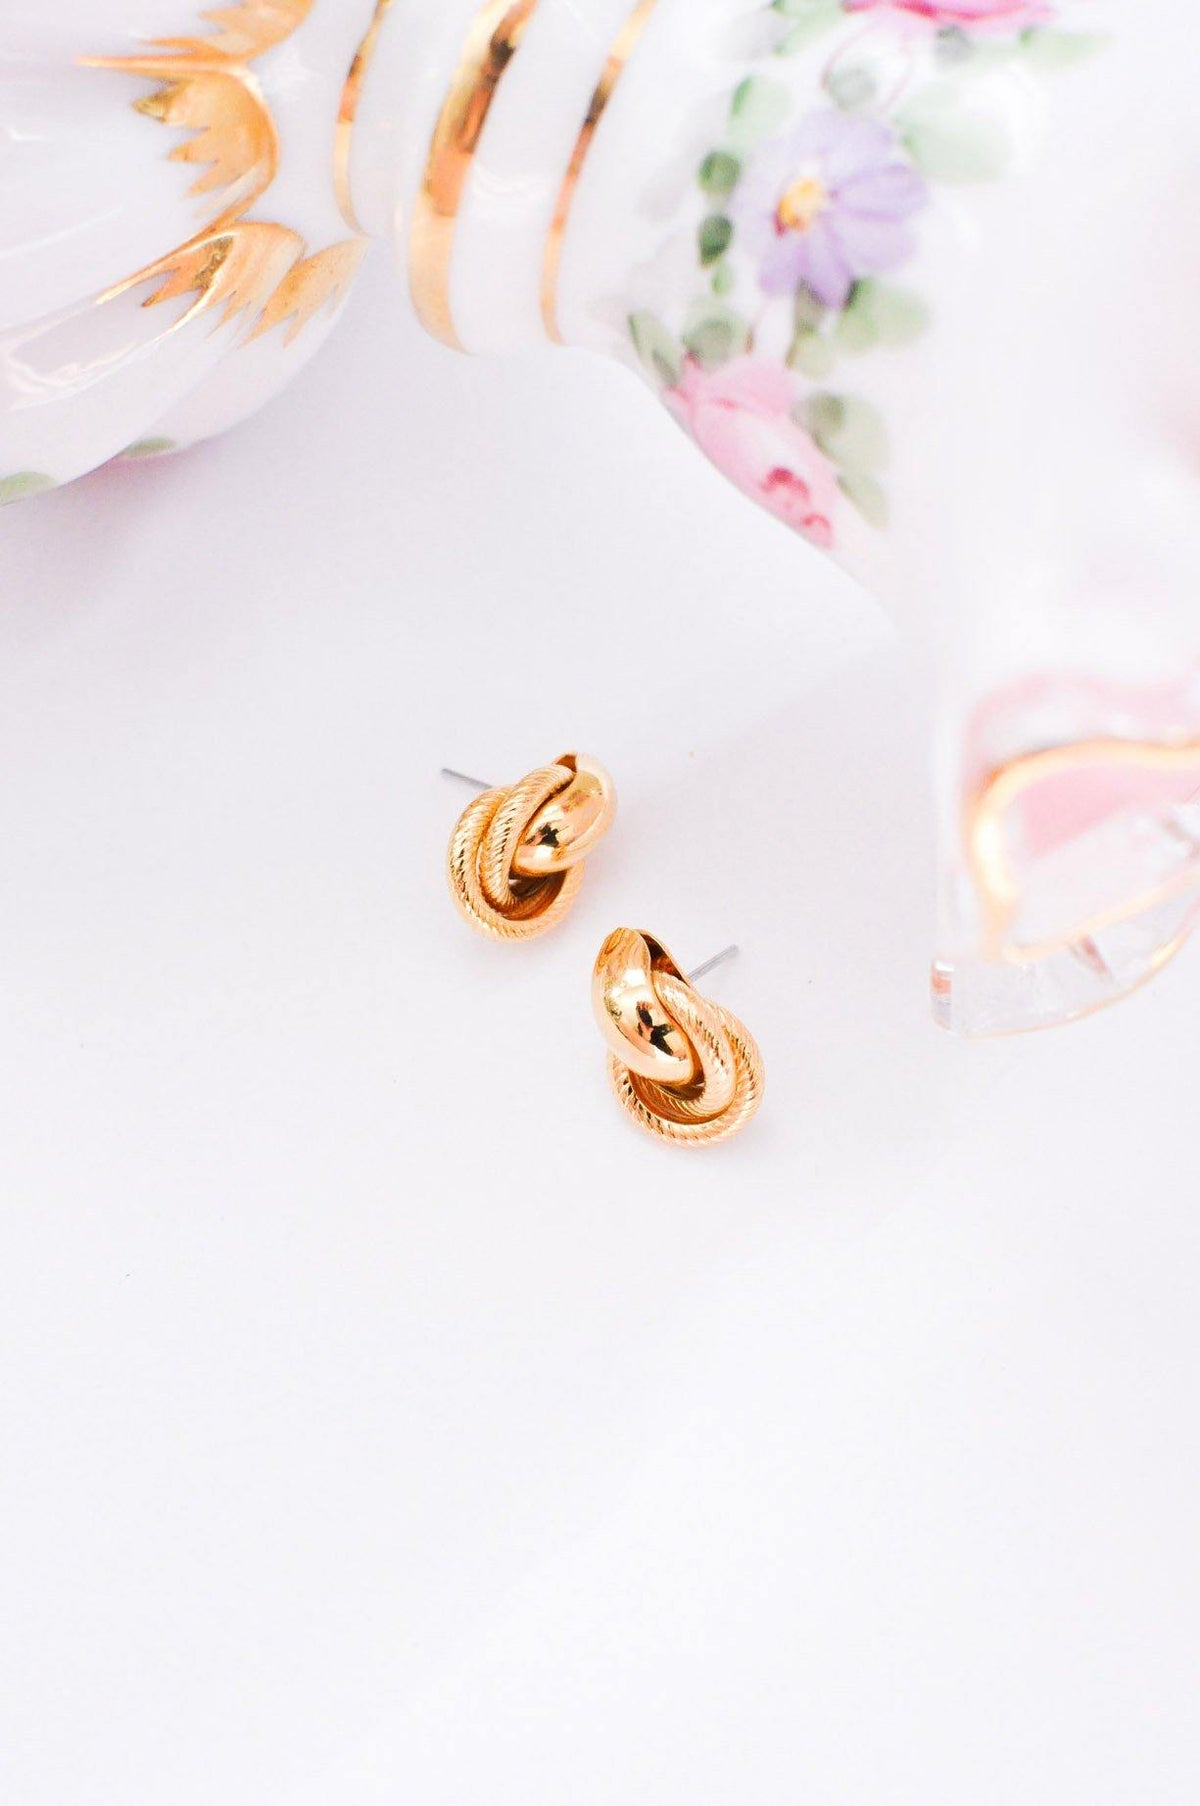 Vintage gold door knocker earrings from Sweet & Spark.